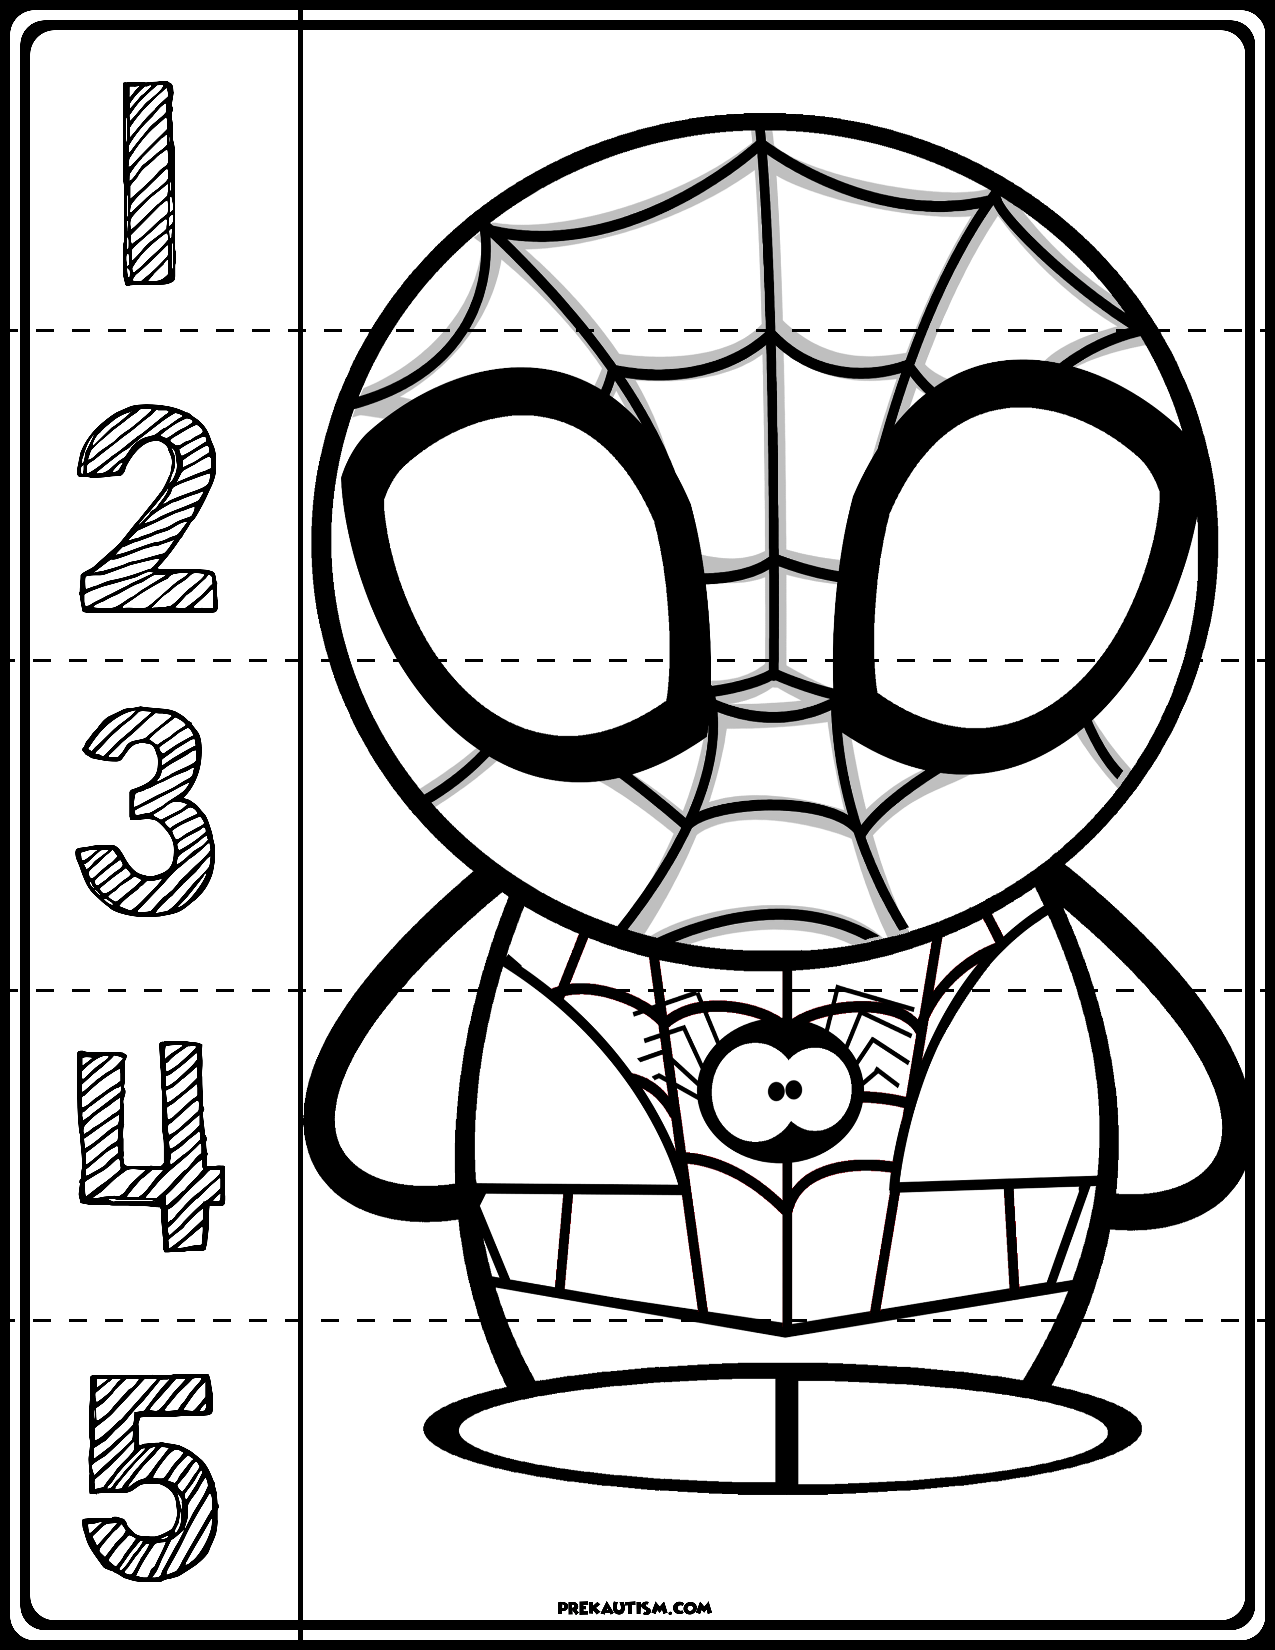 Spider Man 1 5 Counting Puzzle In